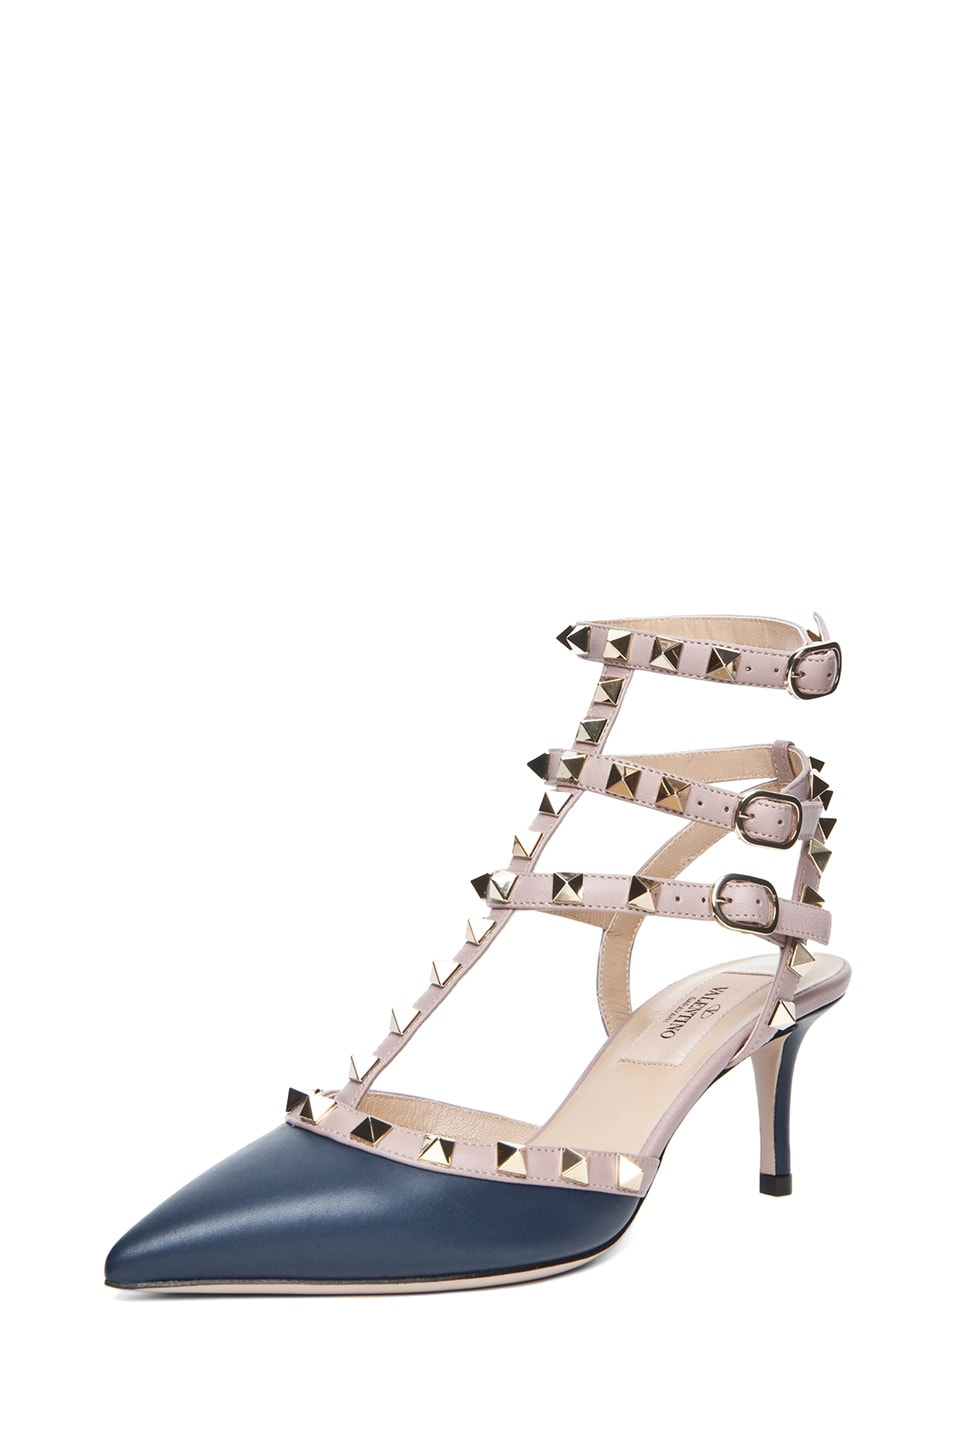 Image 2 of Valentino Rockstud Nappa Leather Slingback T.65 in Marine